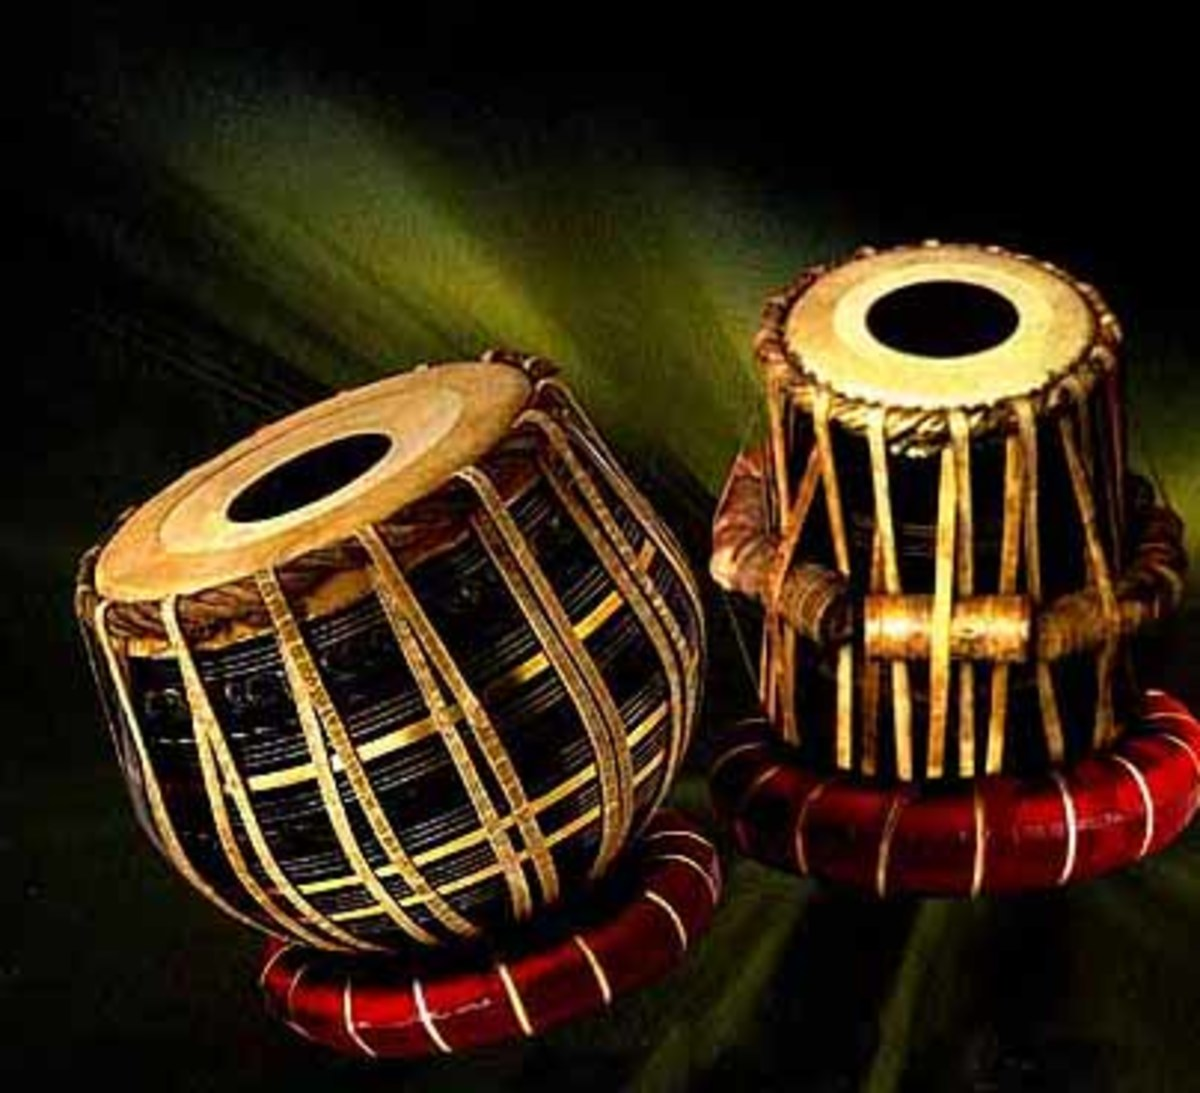 'Tabla' - eastern drums